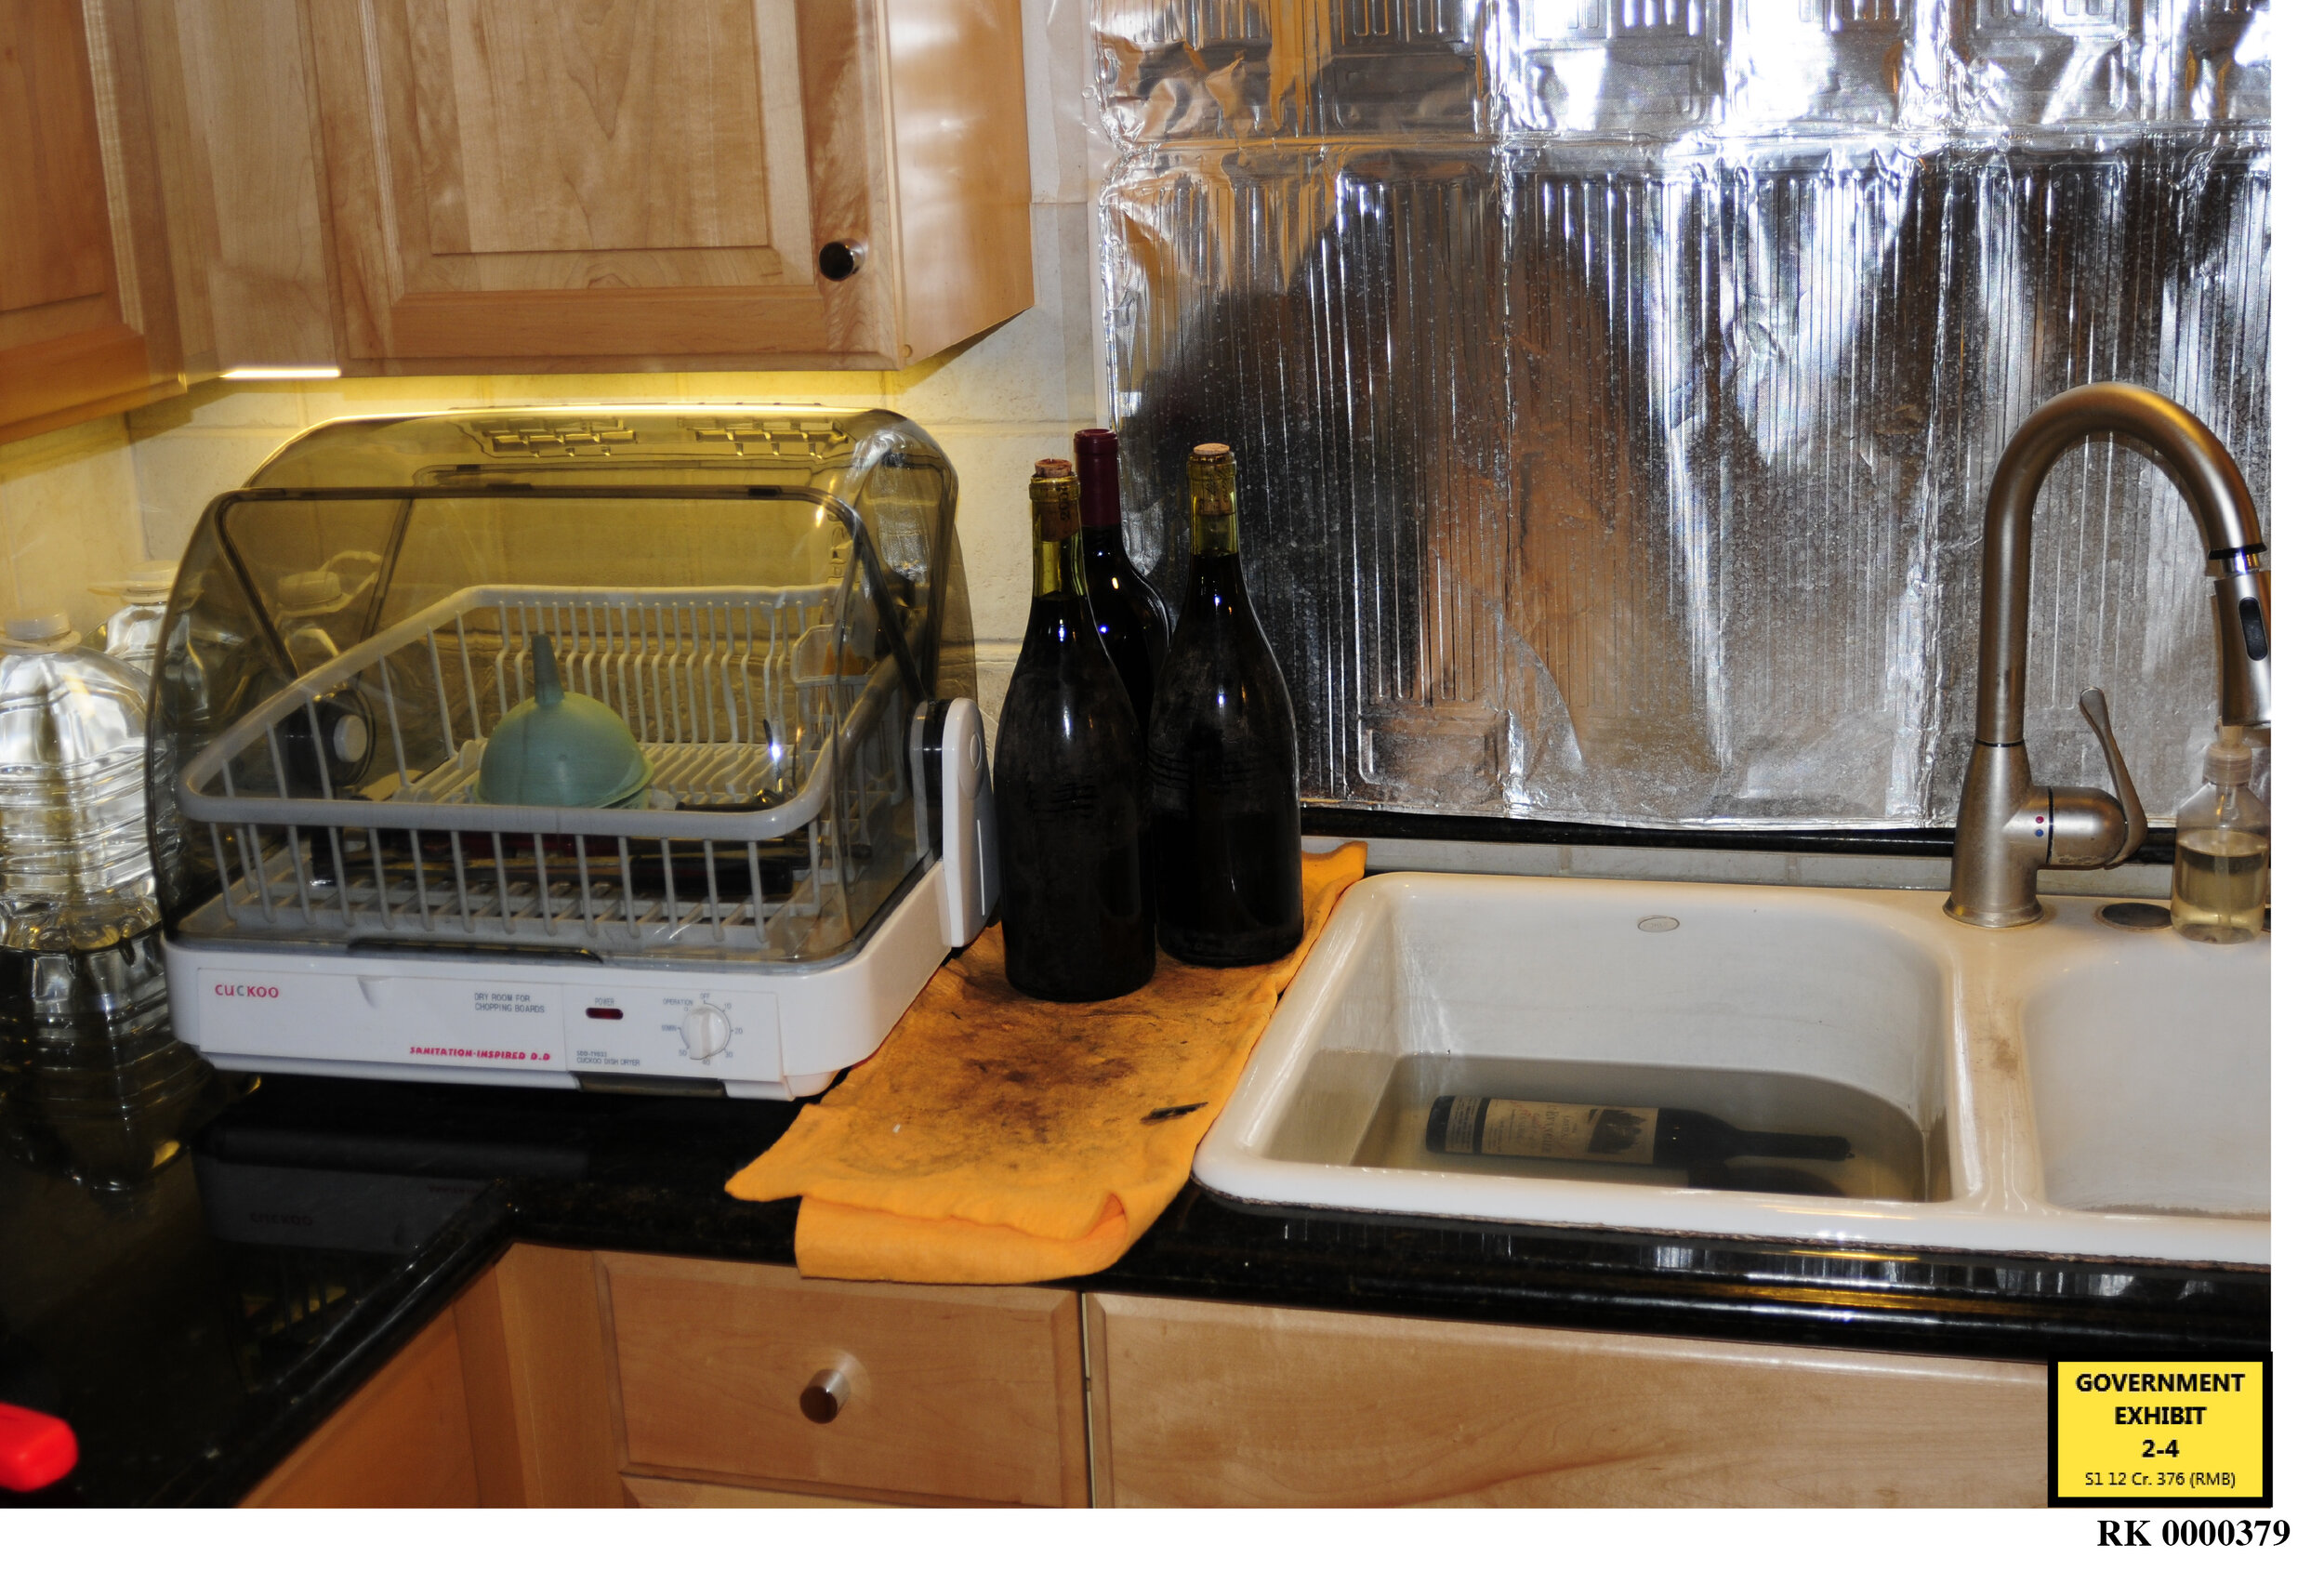 Some counterfeit bottles and the equipment found by the FBI in Kurniawan's house in California